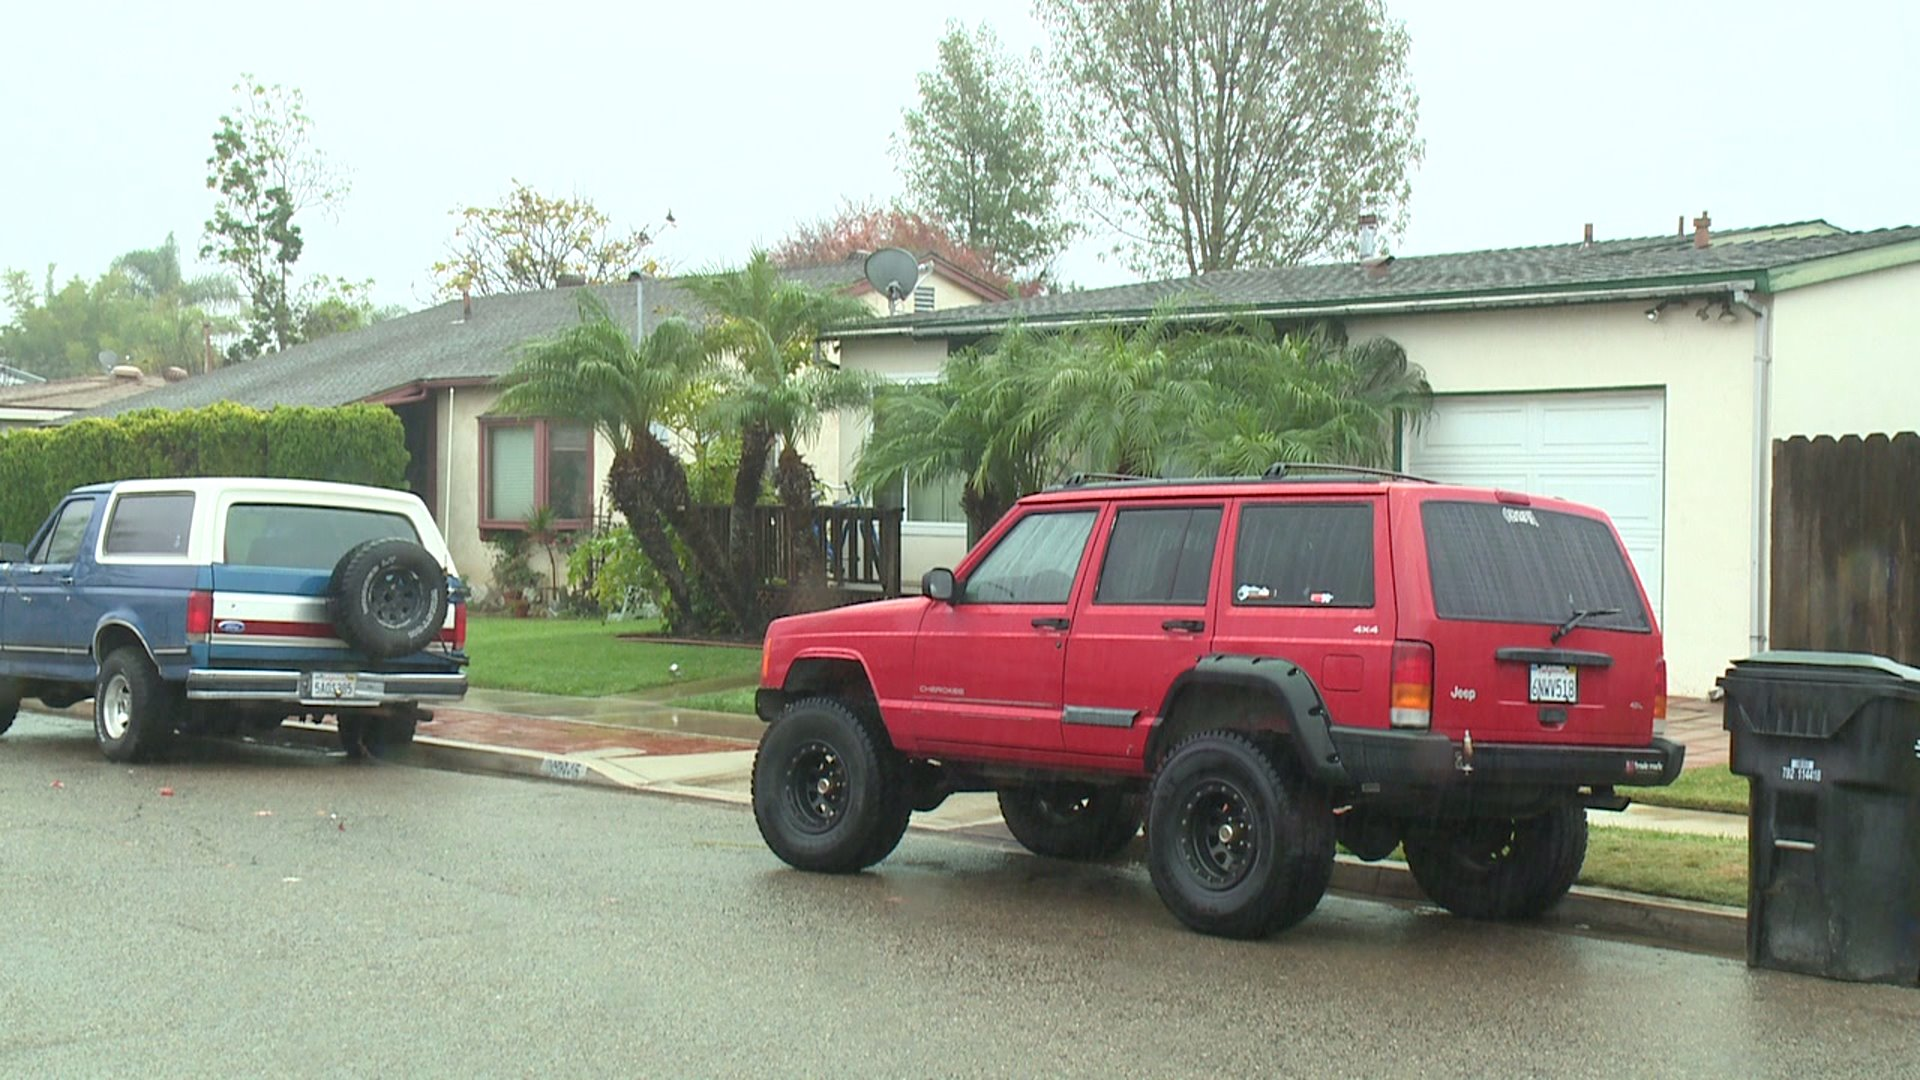 A Clairemont home was raided by a child pornography task force on Dec. 3, 2014.